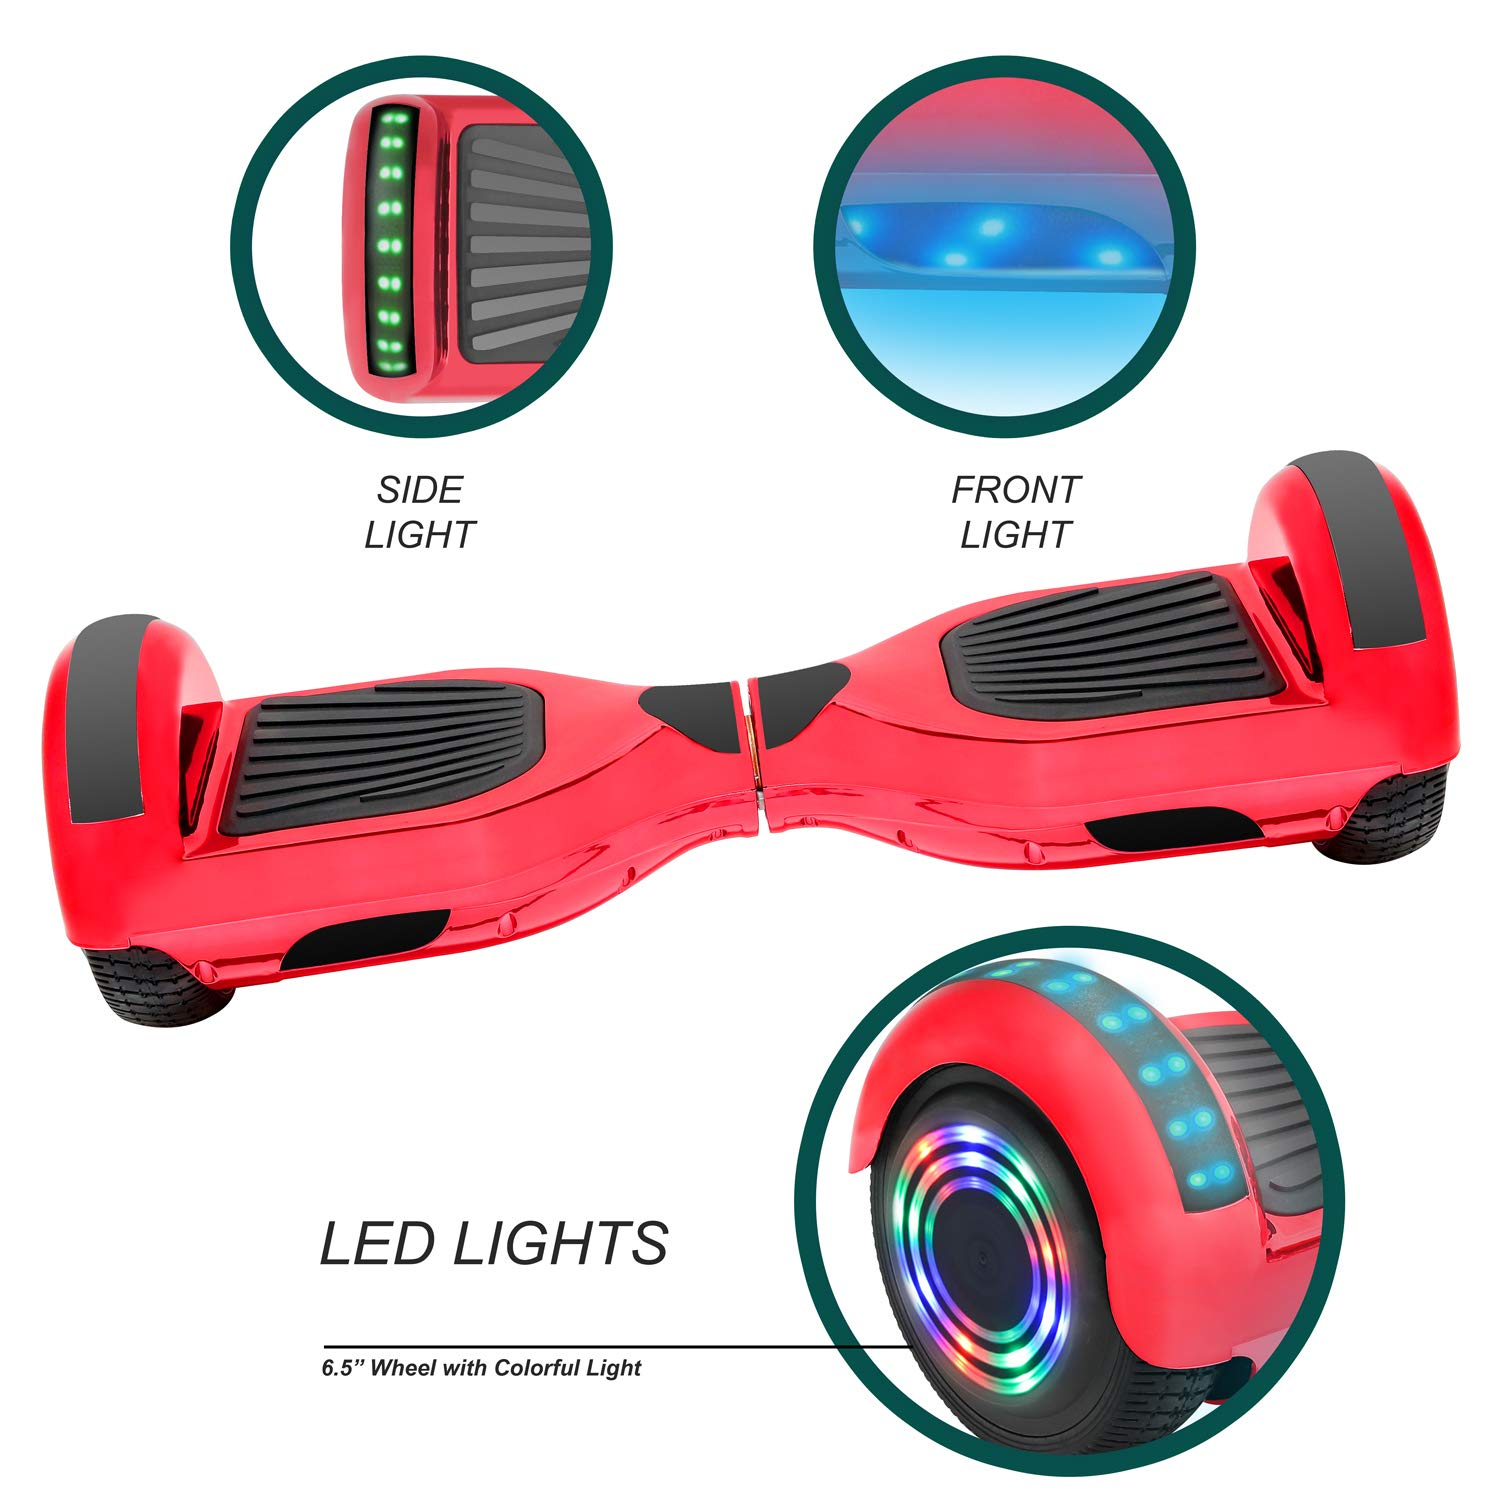 NHT 6.5'' Hoverboard Electric Self Balancing Scooter Sidelights - UL2272 Certified Black, Blue, Pink, Red, White (Chrome Red) by NHT (Image #2)